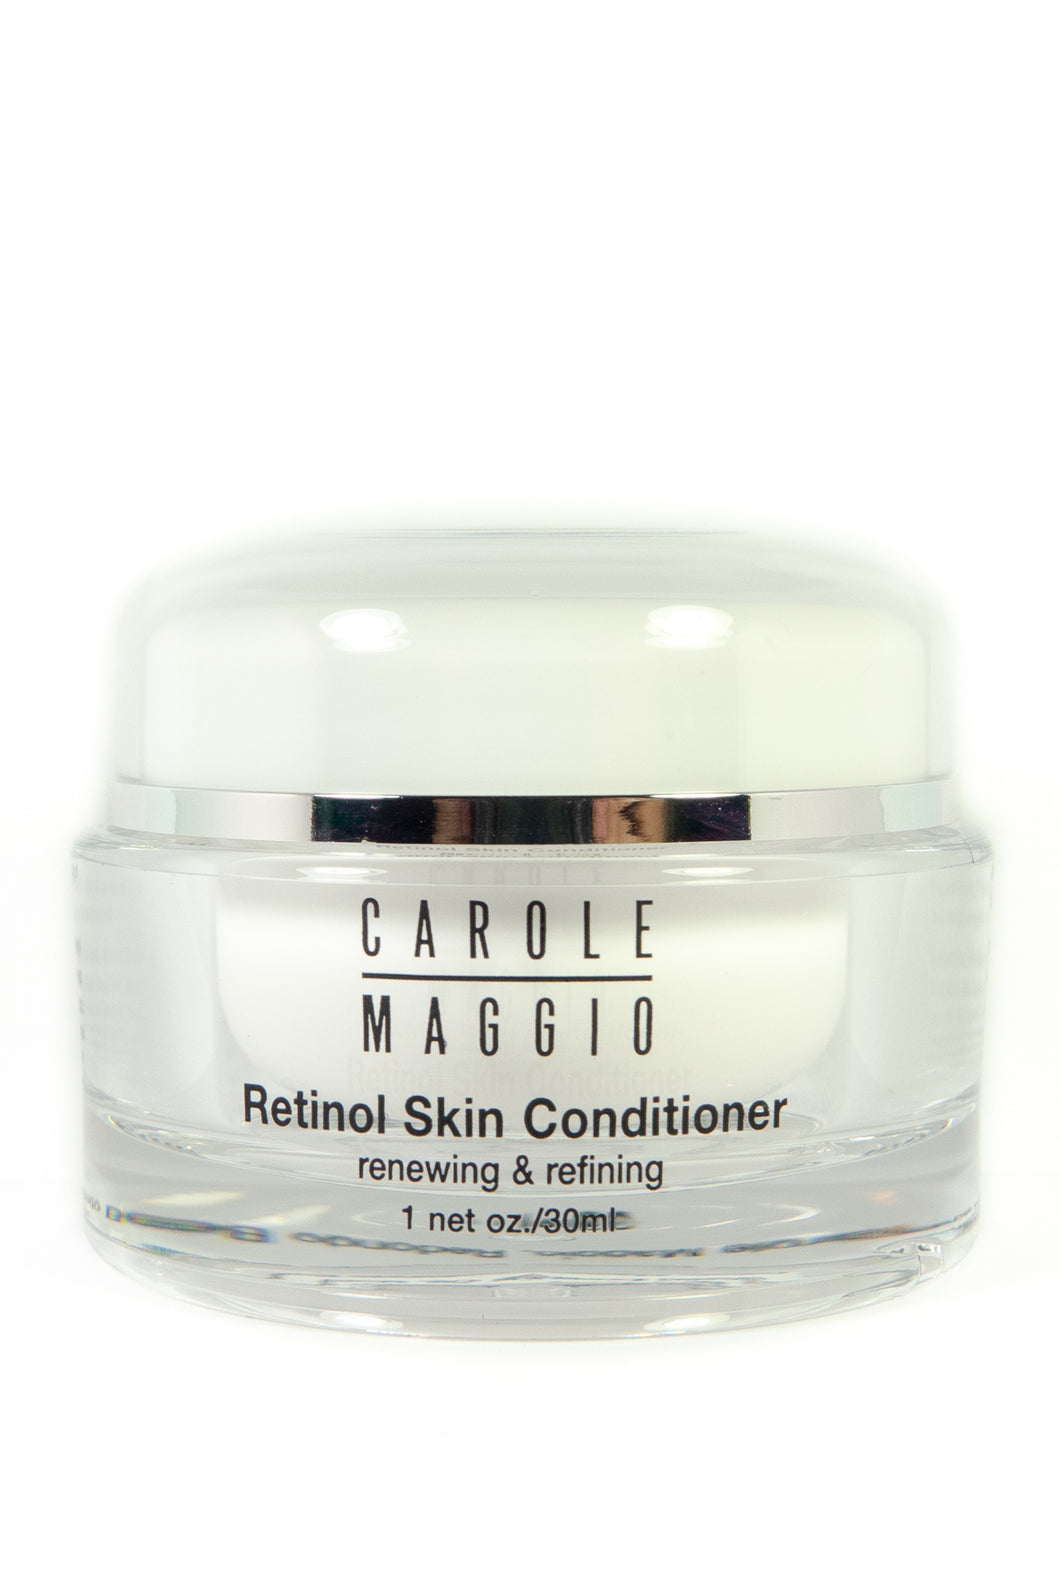 Retinol Skin Conditioner